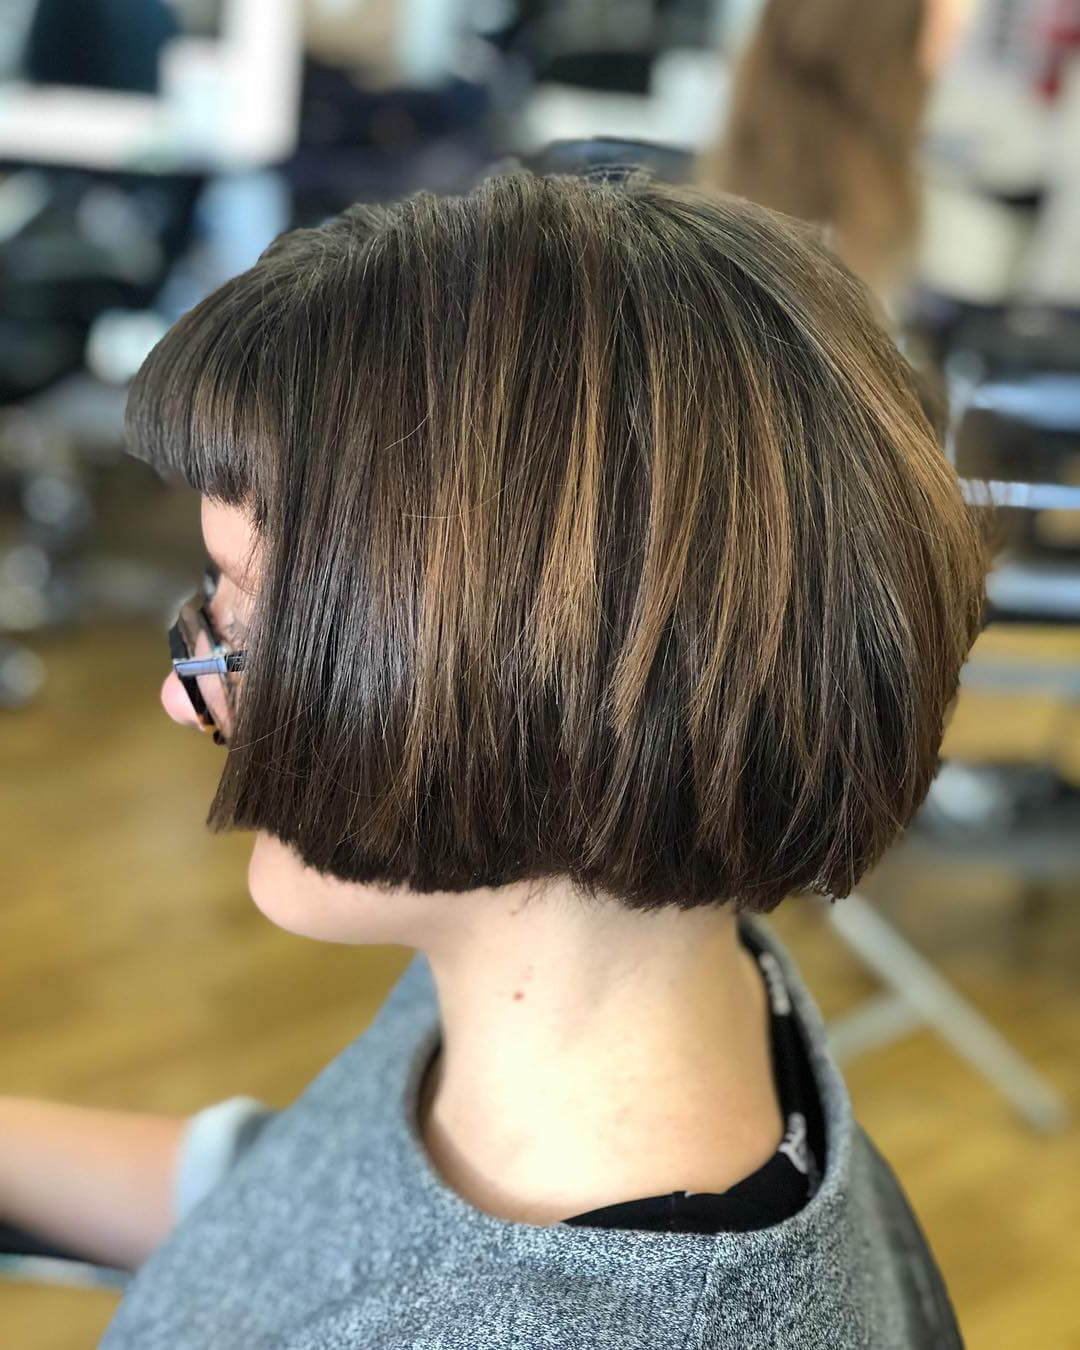 Well Liked Short Cappuccino Bob Hairstyles Inside 30 Short Bob Haircuts – Flaunt Your Short Hair, Surprise (View 2 of 20)